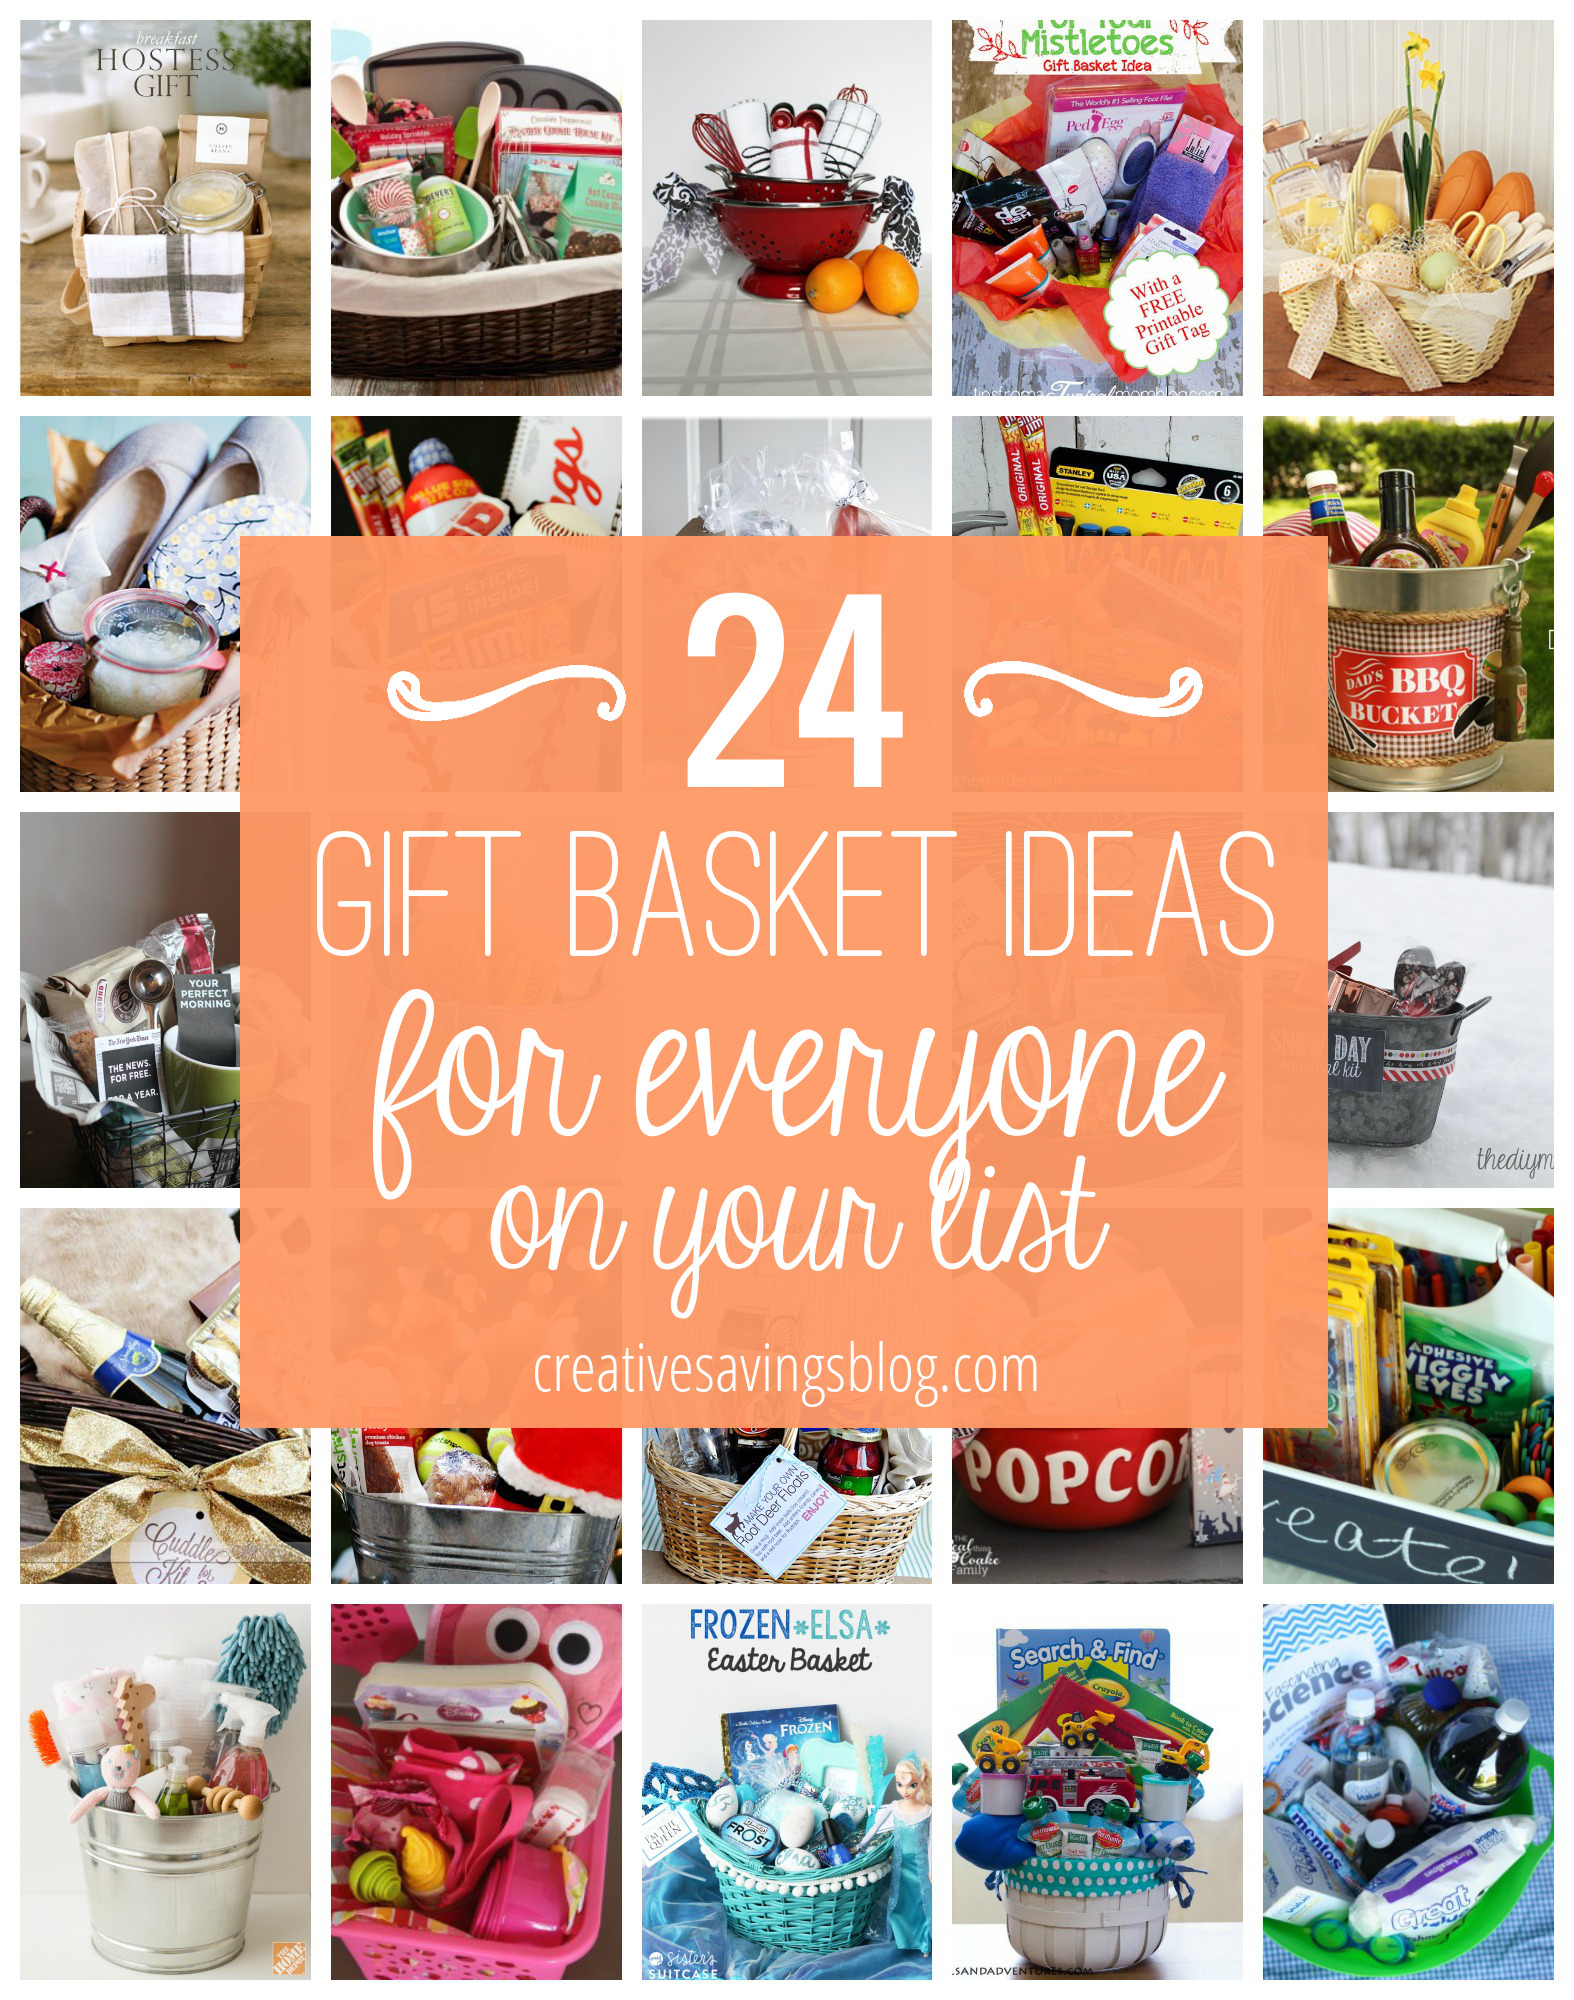 Diy T Basket Ideas For Everyone On Your List